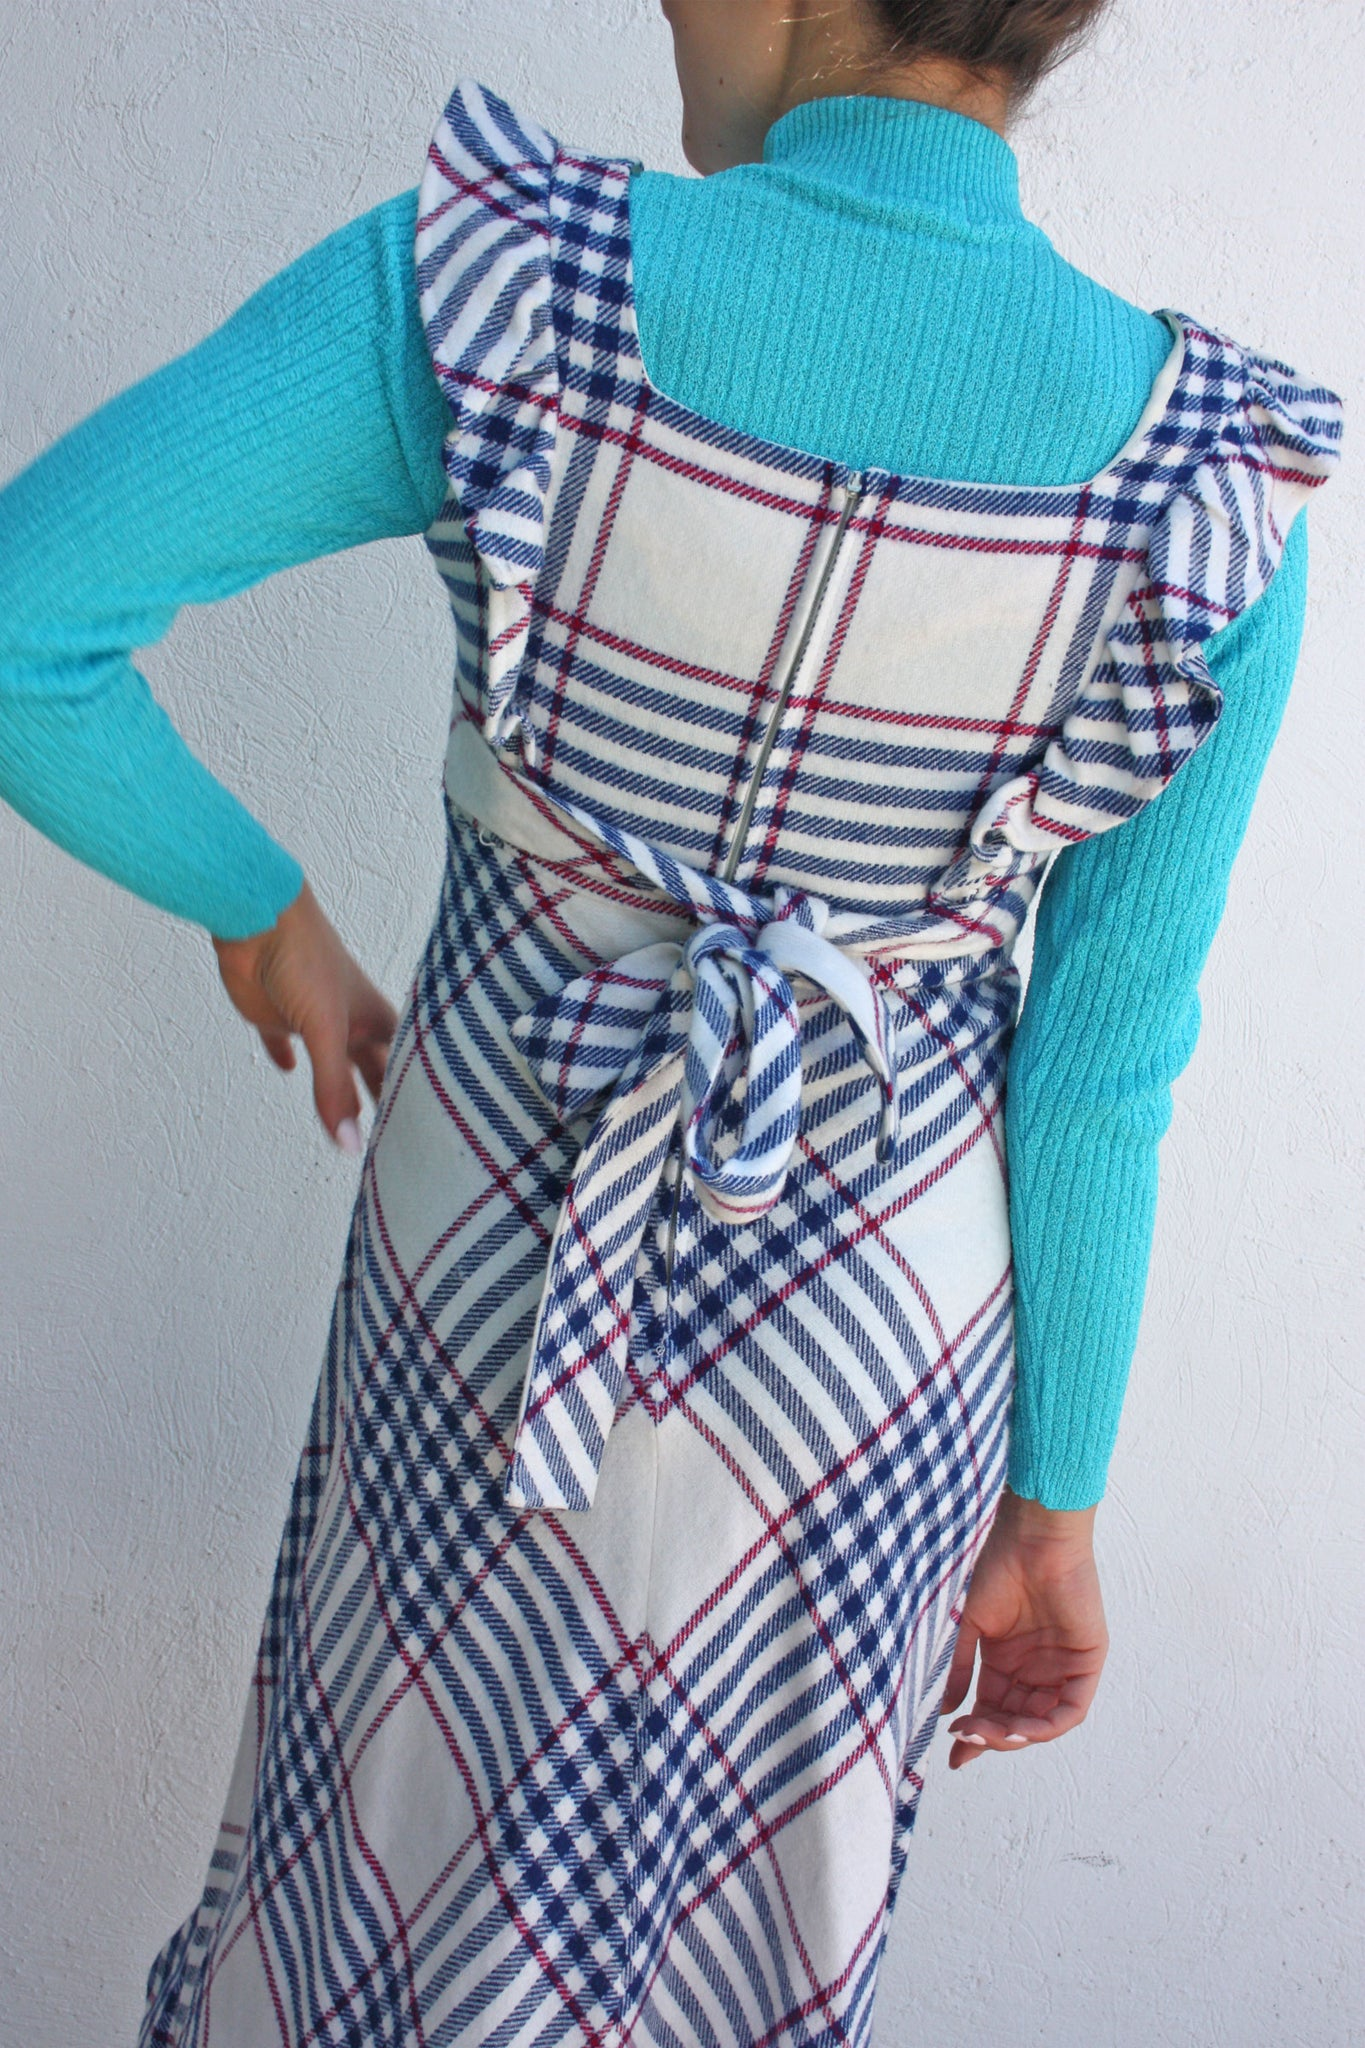 70's pinafore wool dress - Shop SoLovesVintage